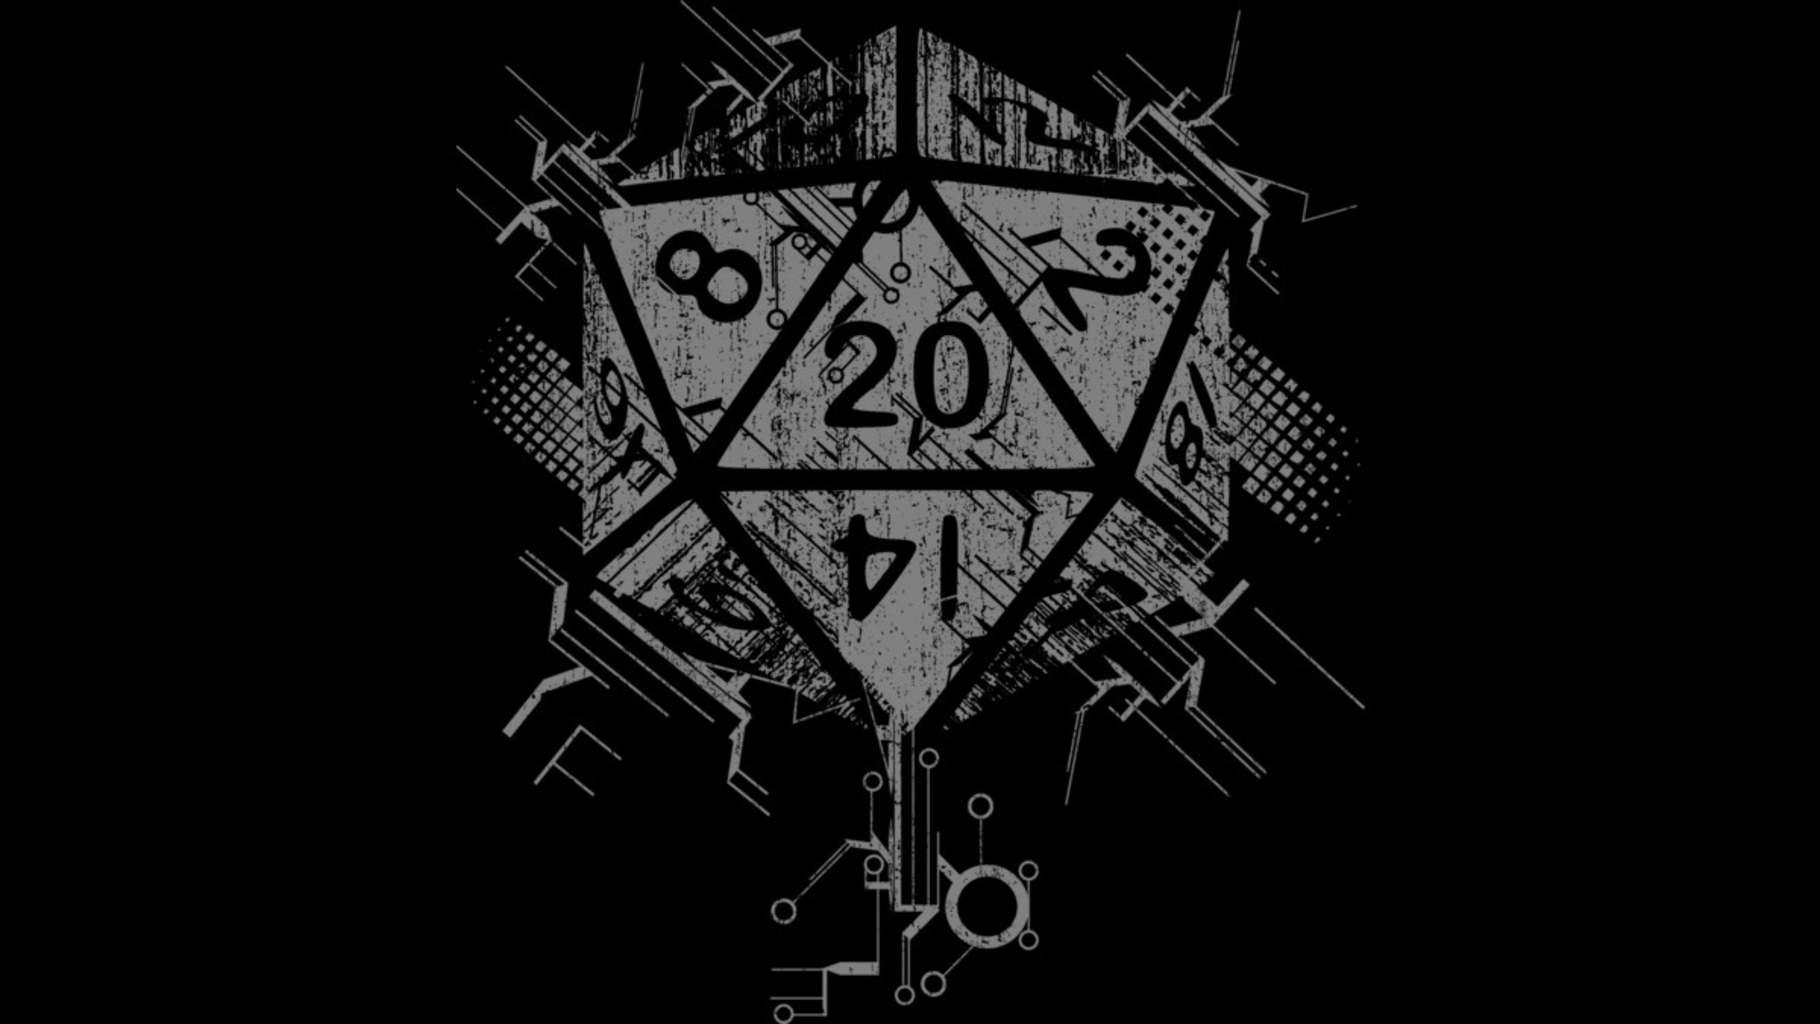 Design by Humans: D20 of power